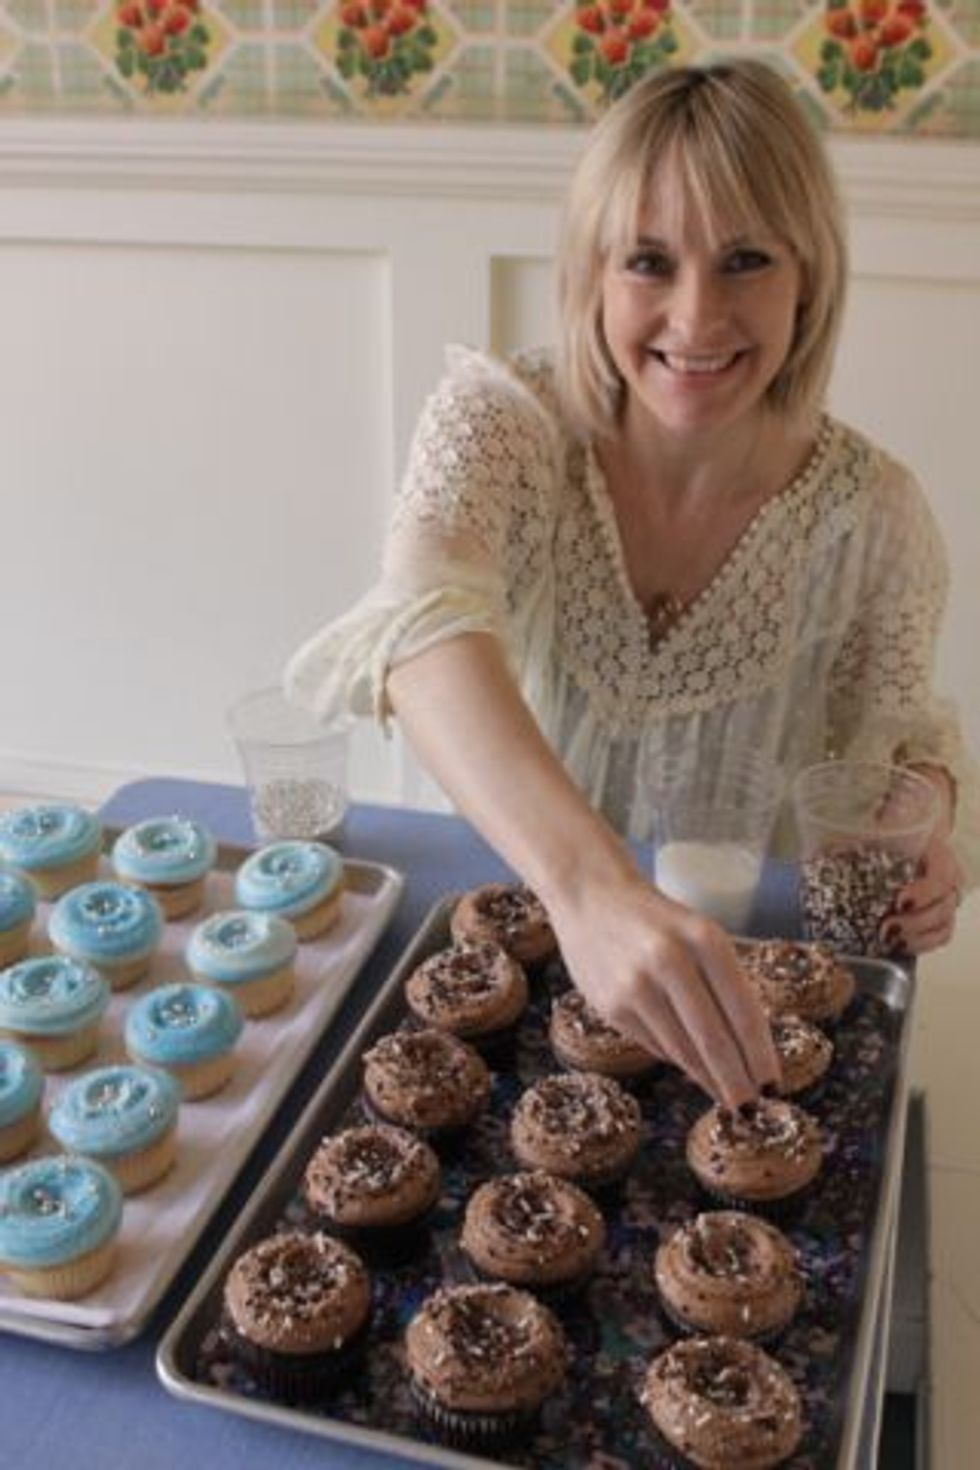 Rebecca Taylor's Mother's Day Cupcakes to the Rescue